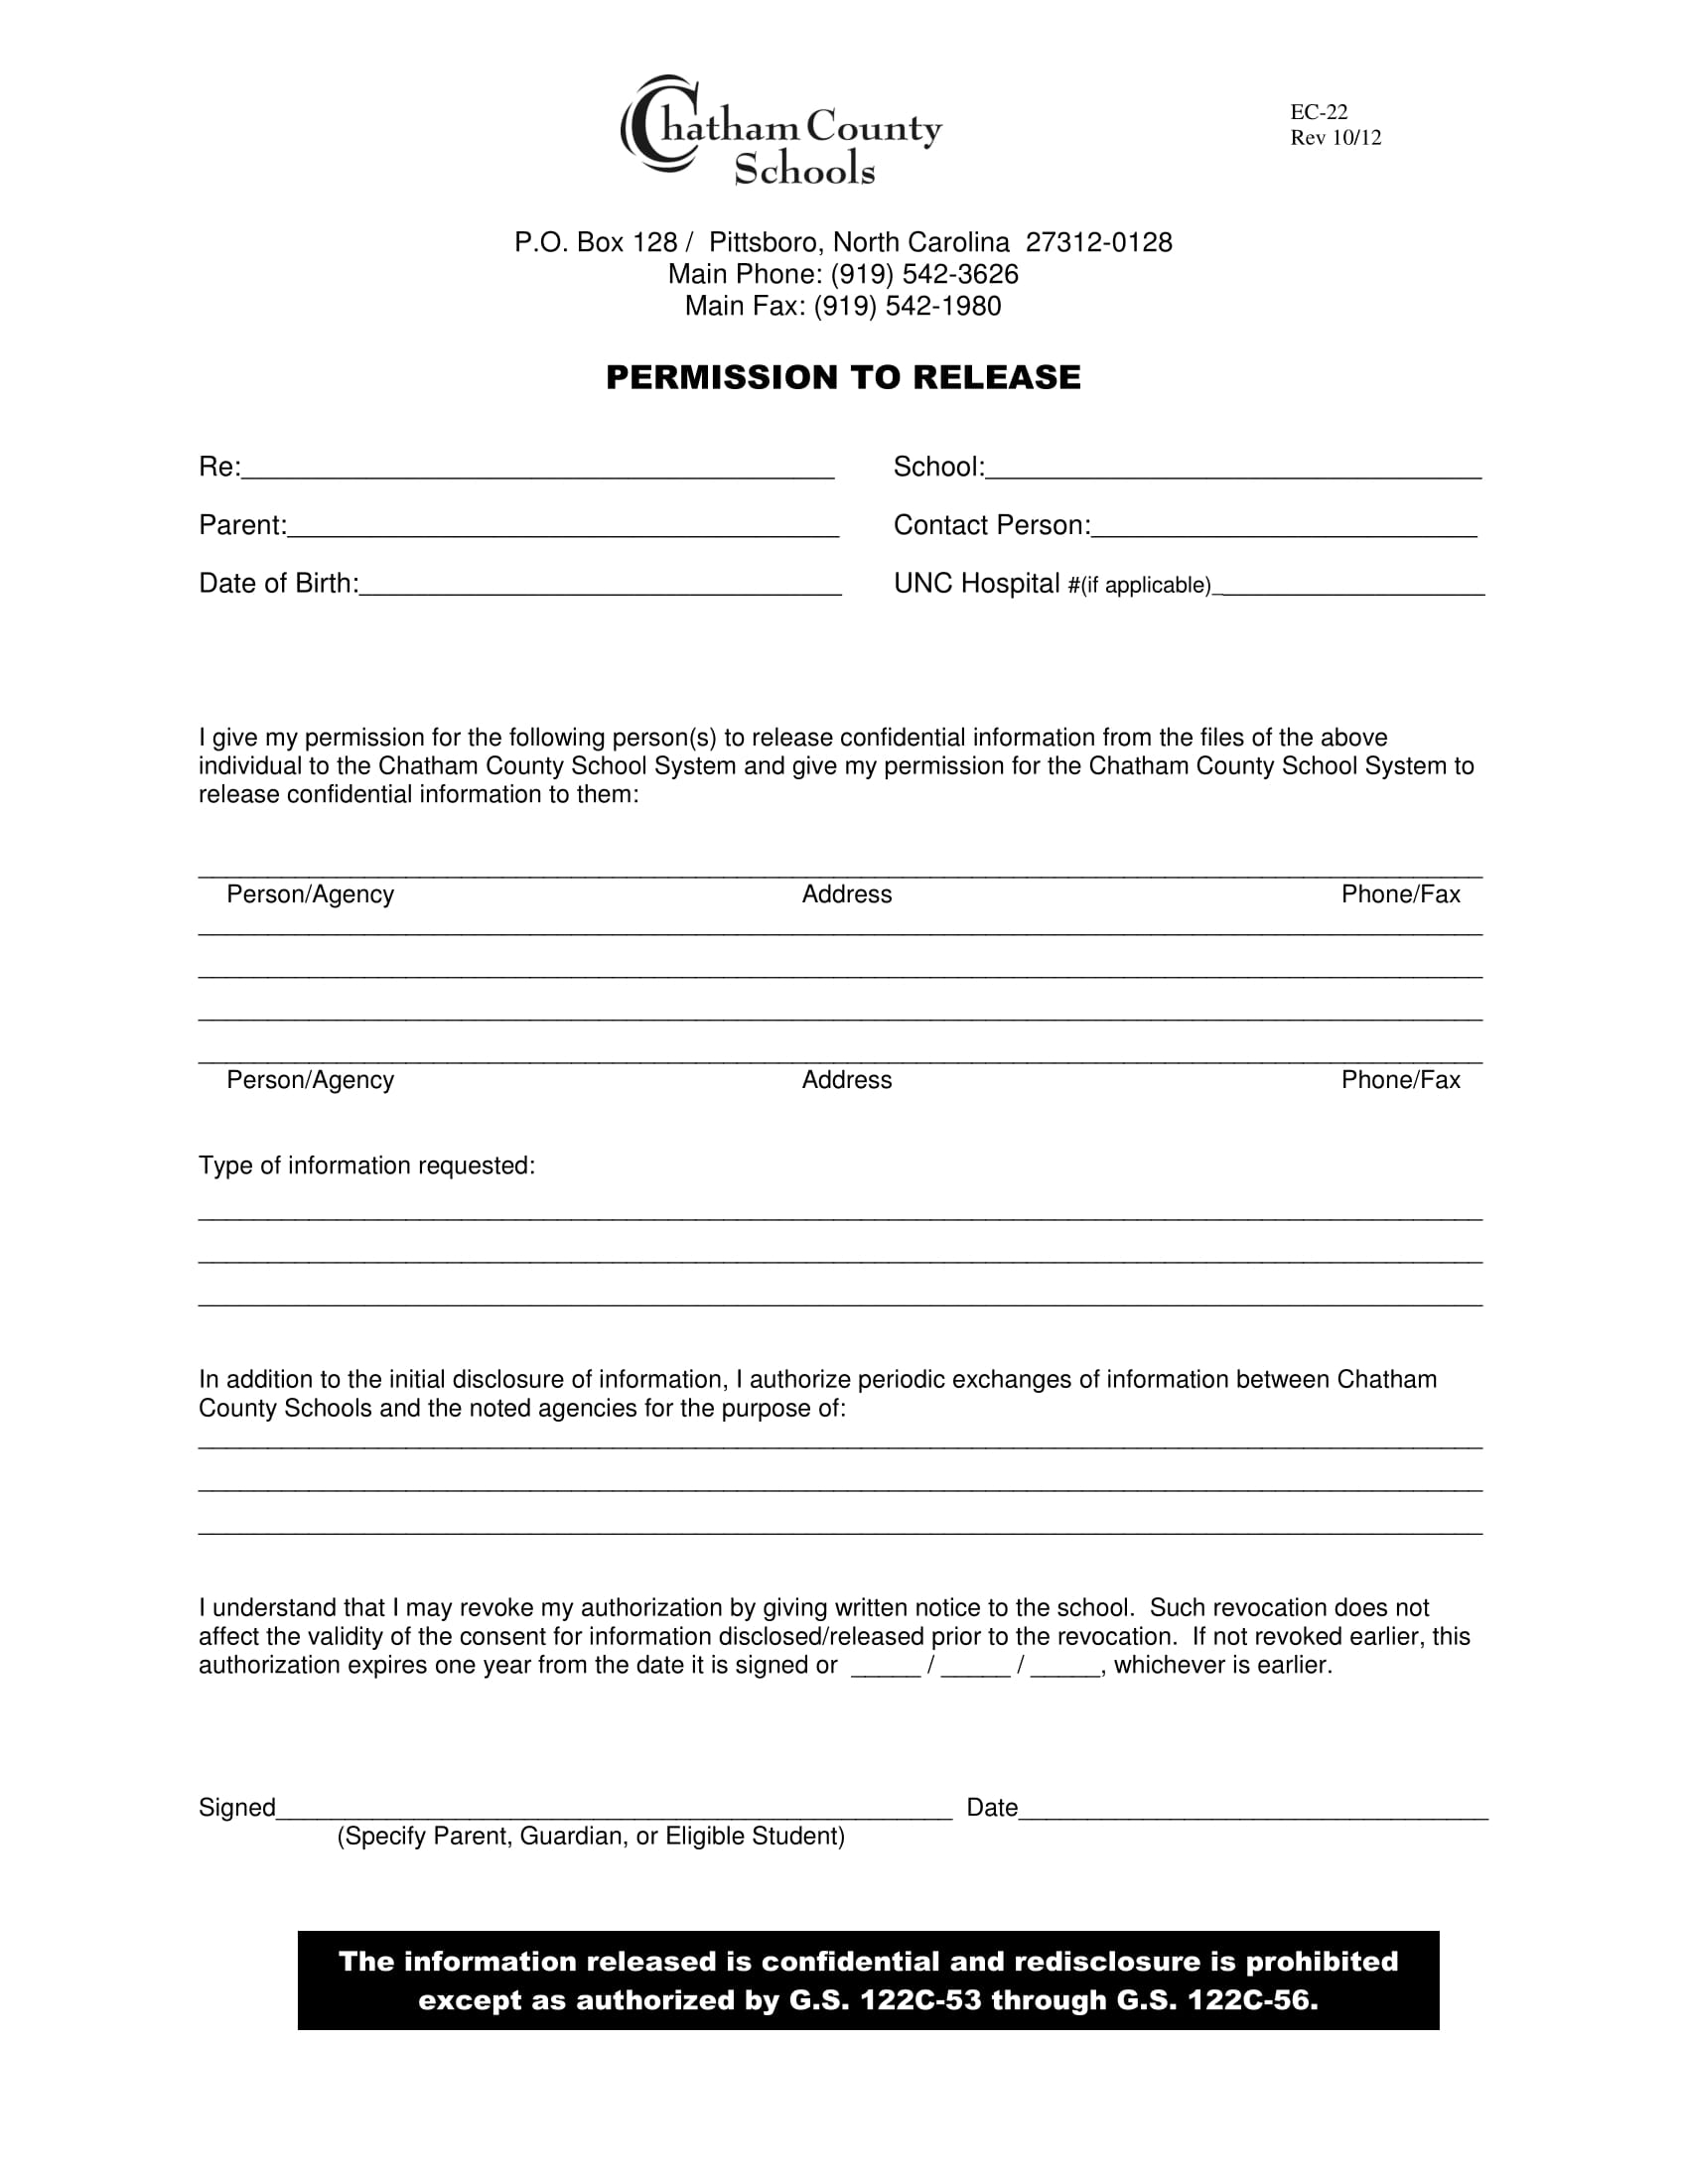 release of student information form 1